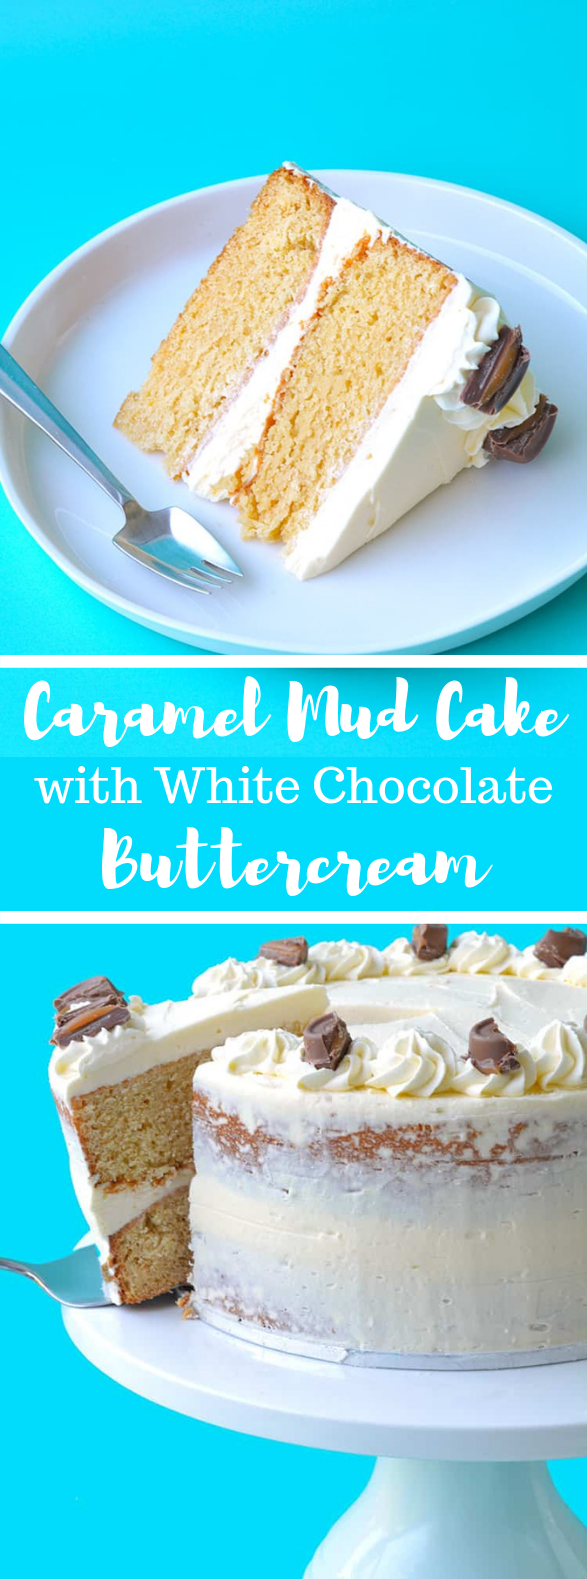 CARAMEL MUD CAKE WITH WHITE CHOCOLATE BUTTERCREAM #dessert #cakerecipe